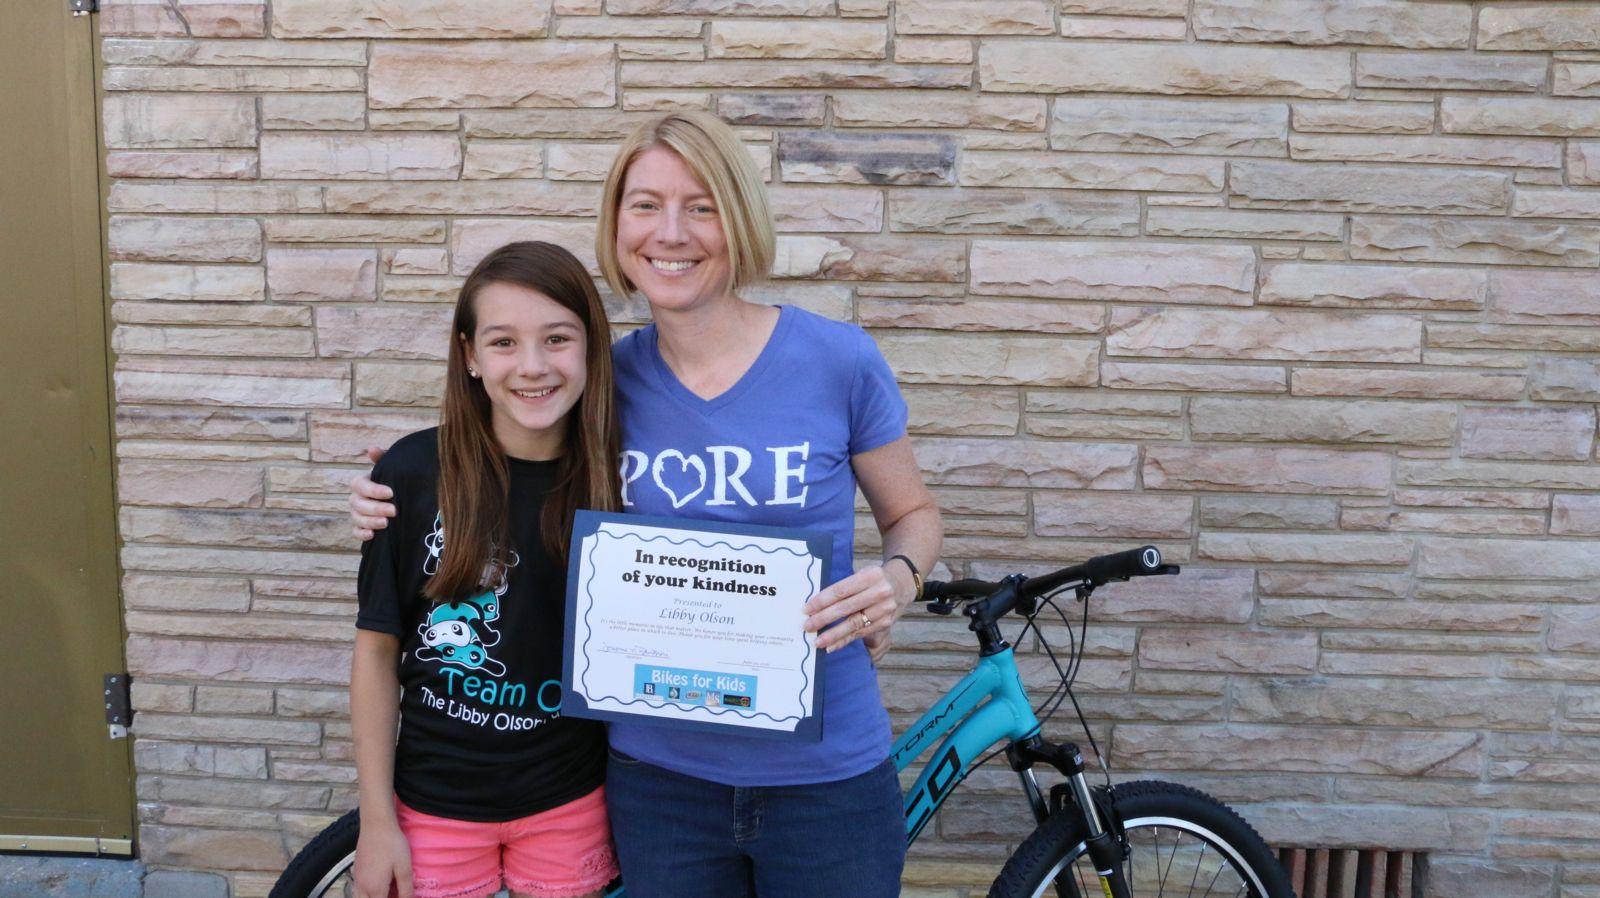 Libby Olson and Renae Gould - Bikes for Kids 2016